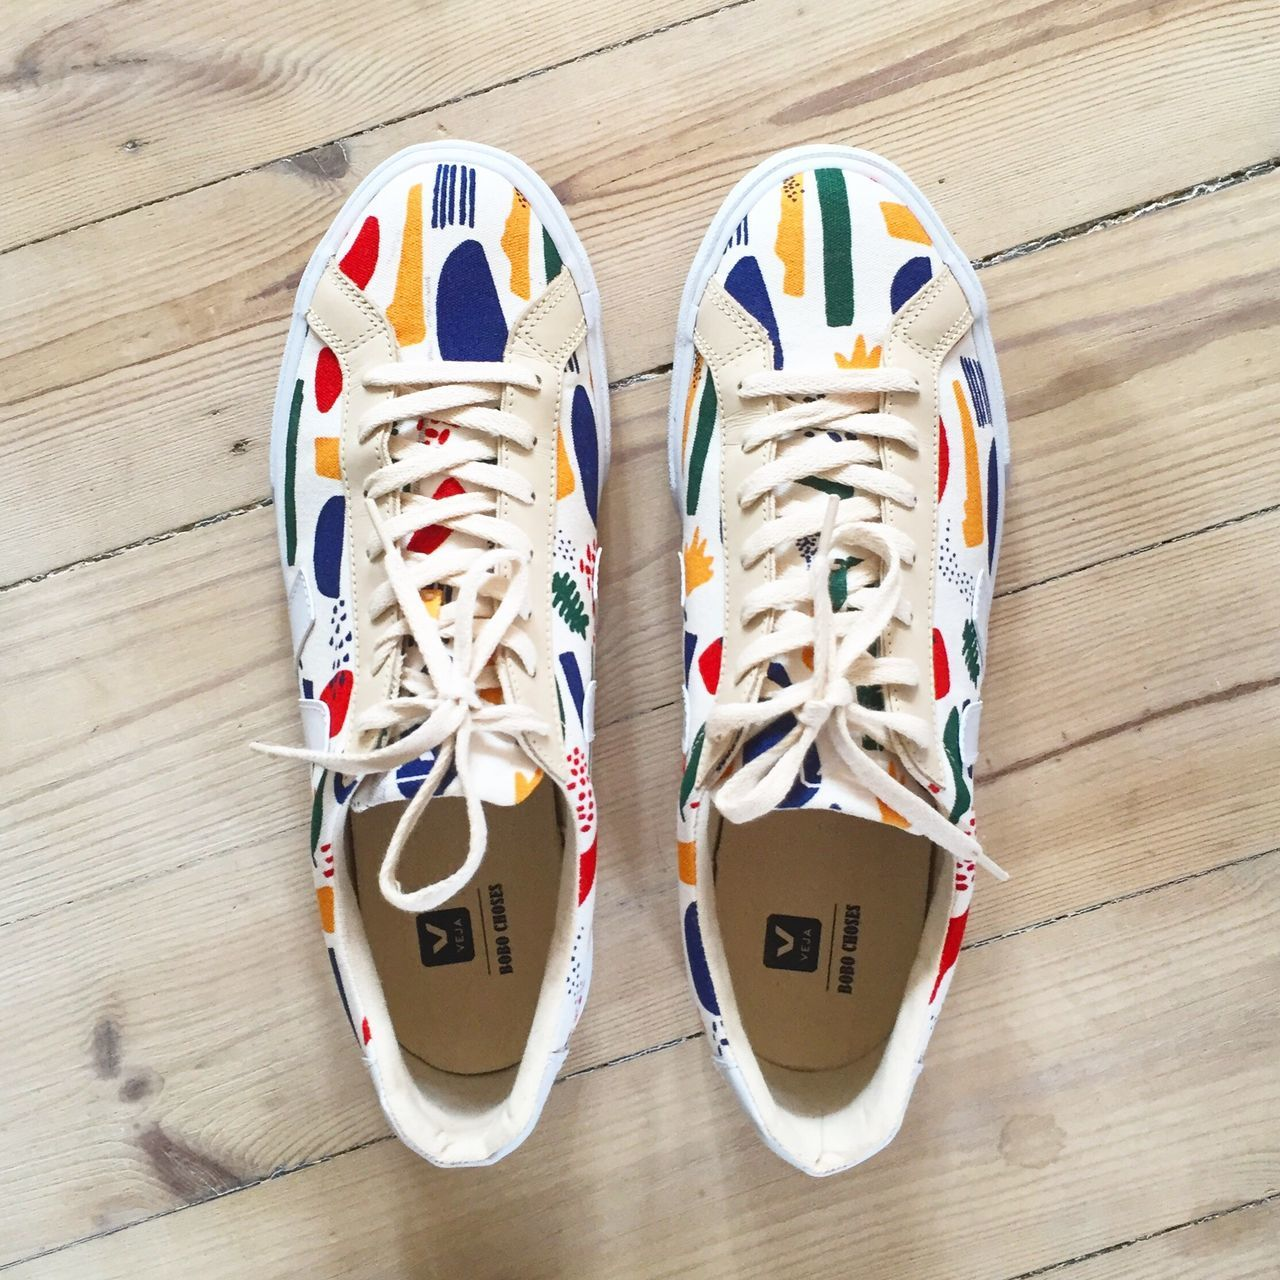 New Kicks New Kickz New Shoes Shoes Sneaker Sneakers Sneakerhead  Matisse Cutouts Art Modern Art Veja Colorful White